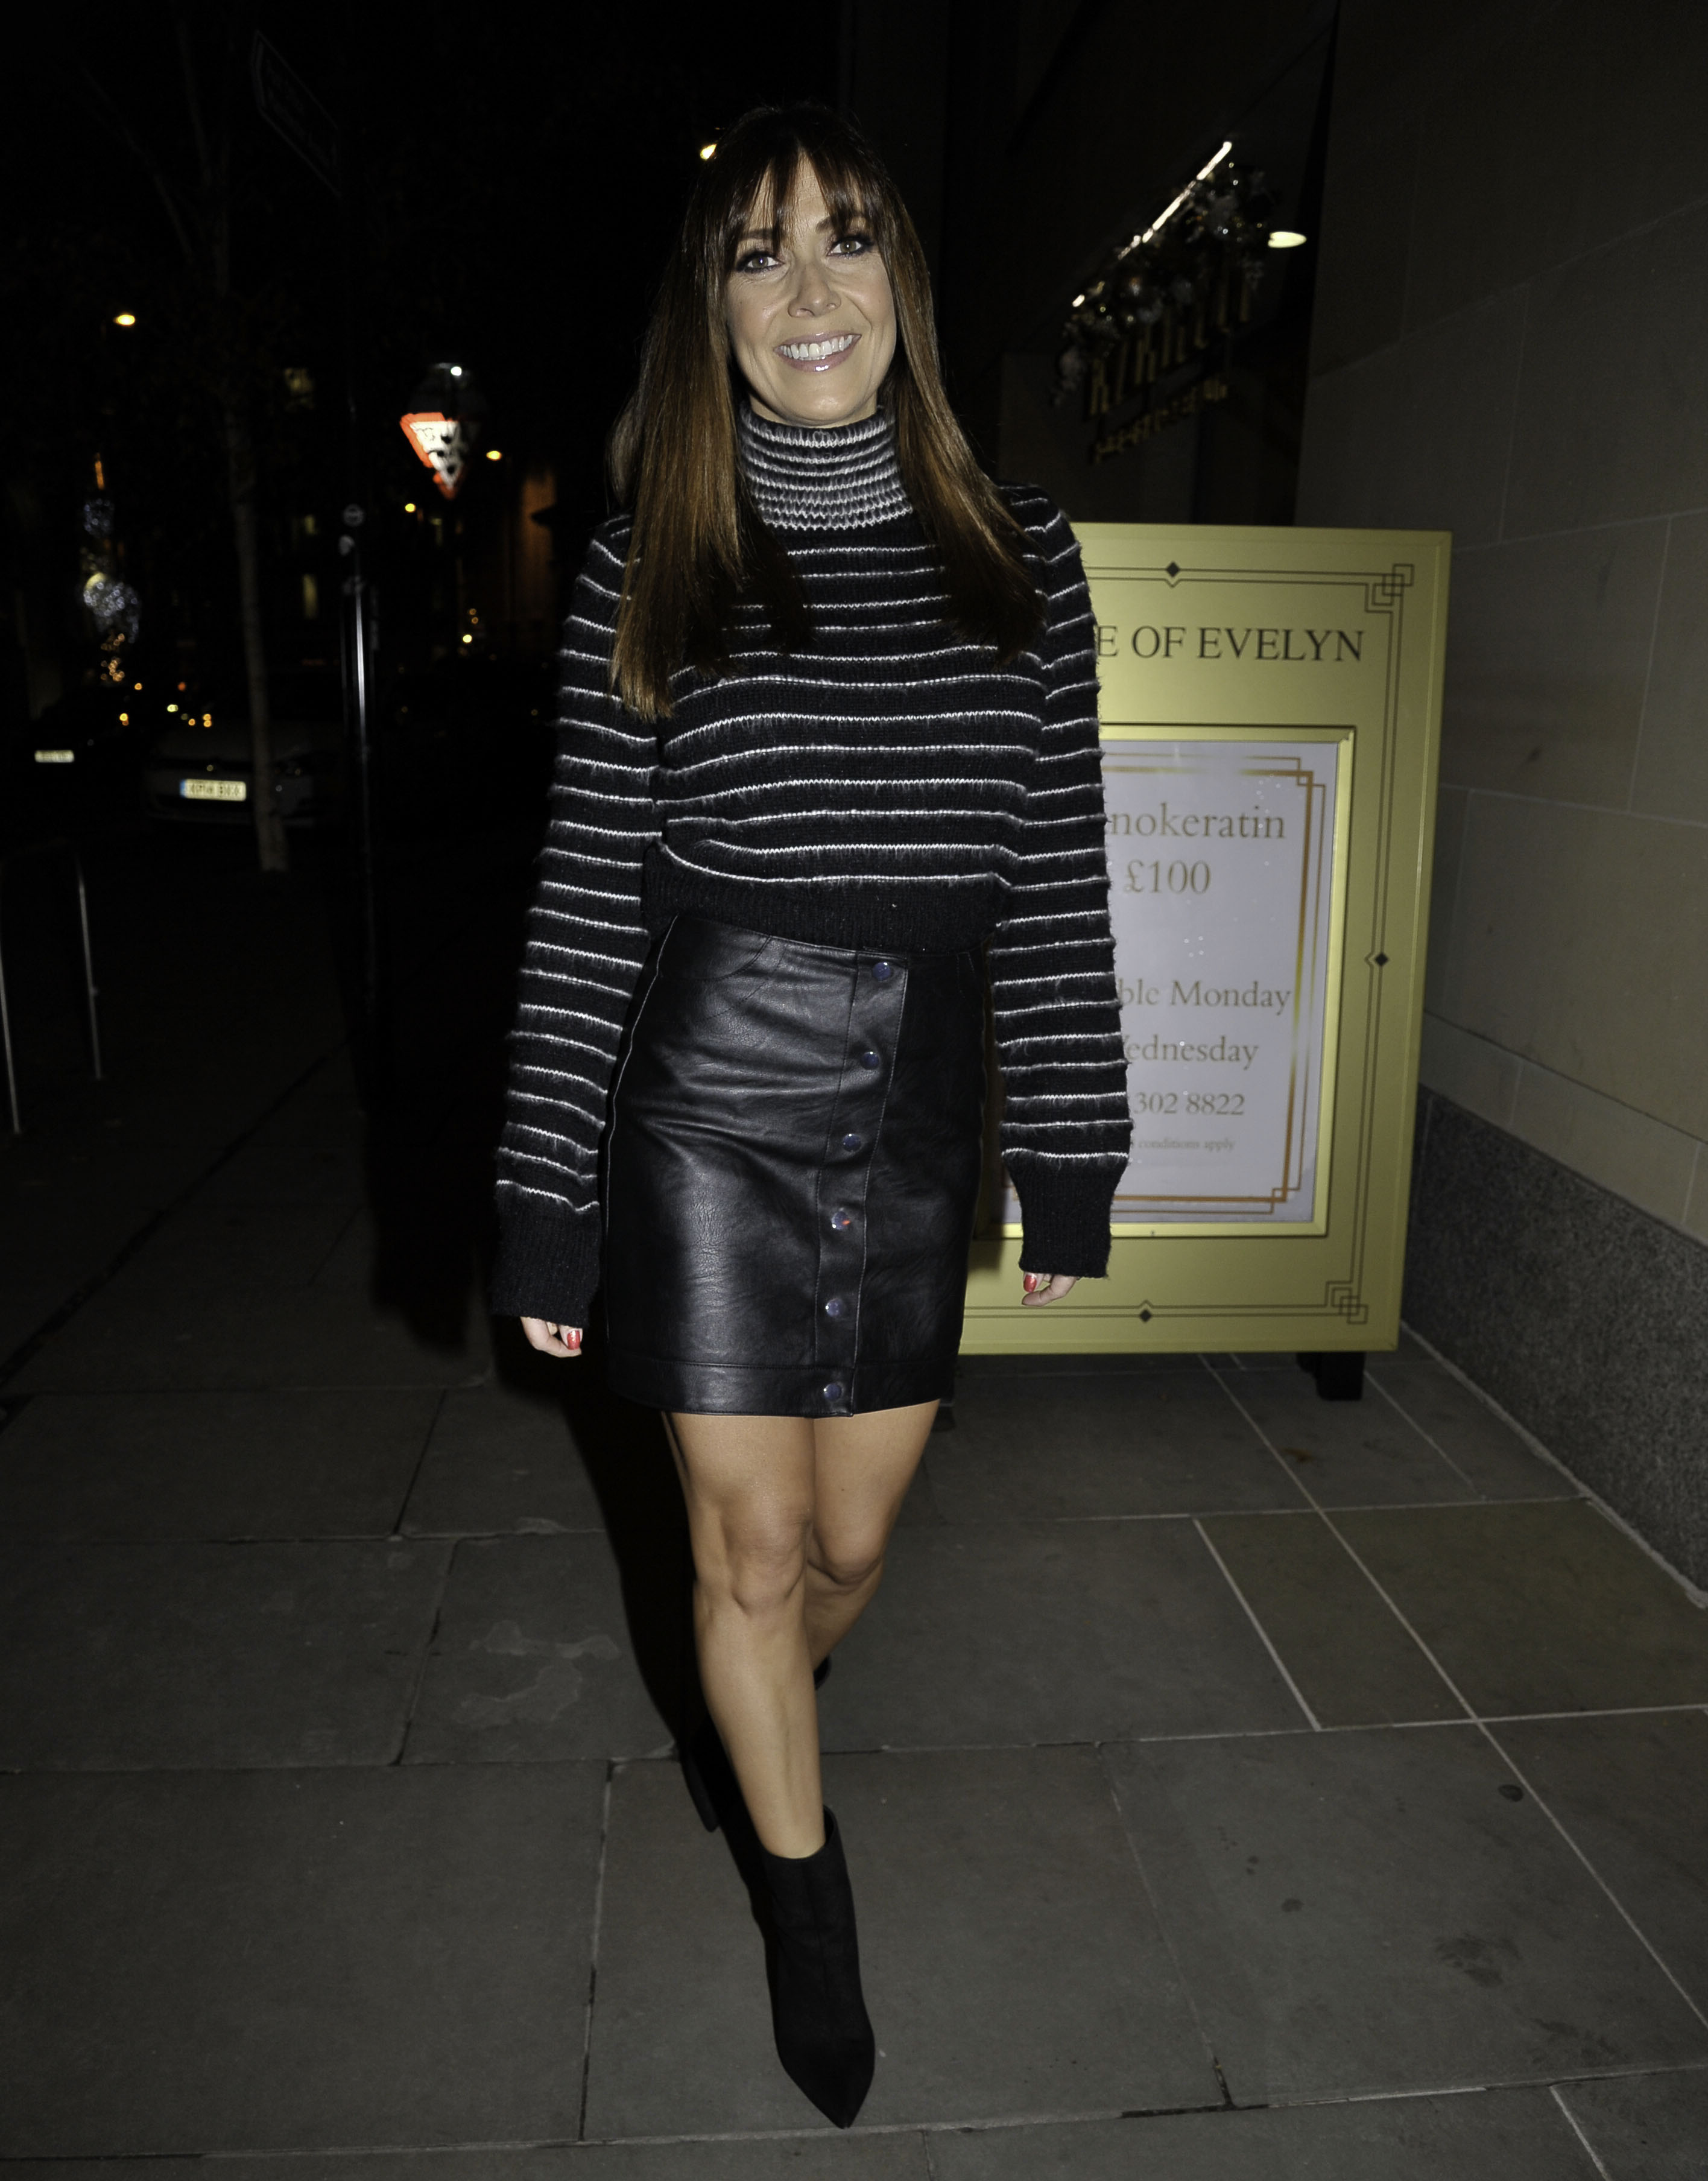 Kym Marsh At House Of Evelyn In Manchester